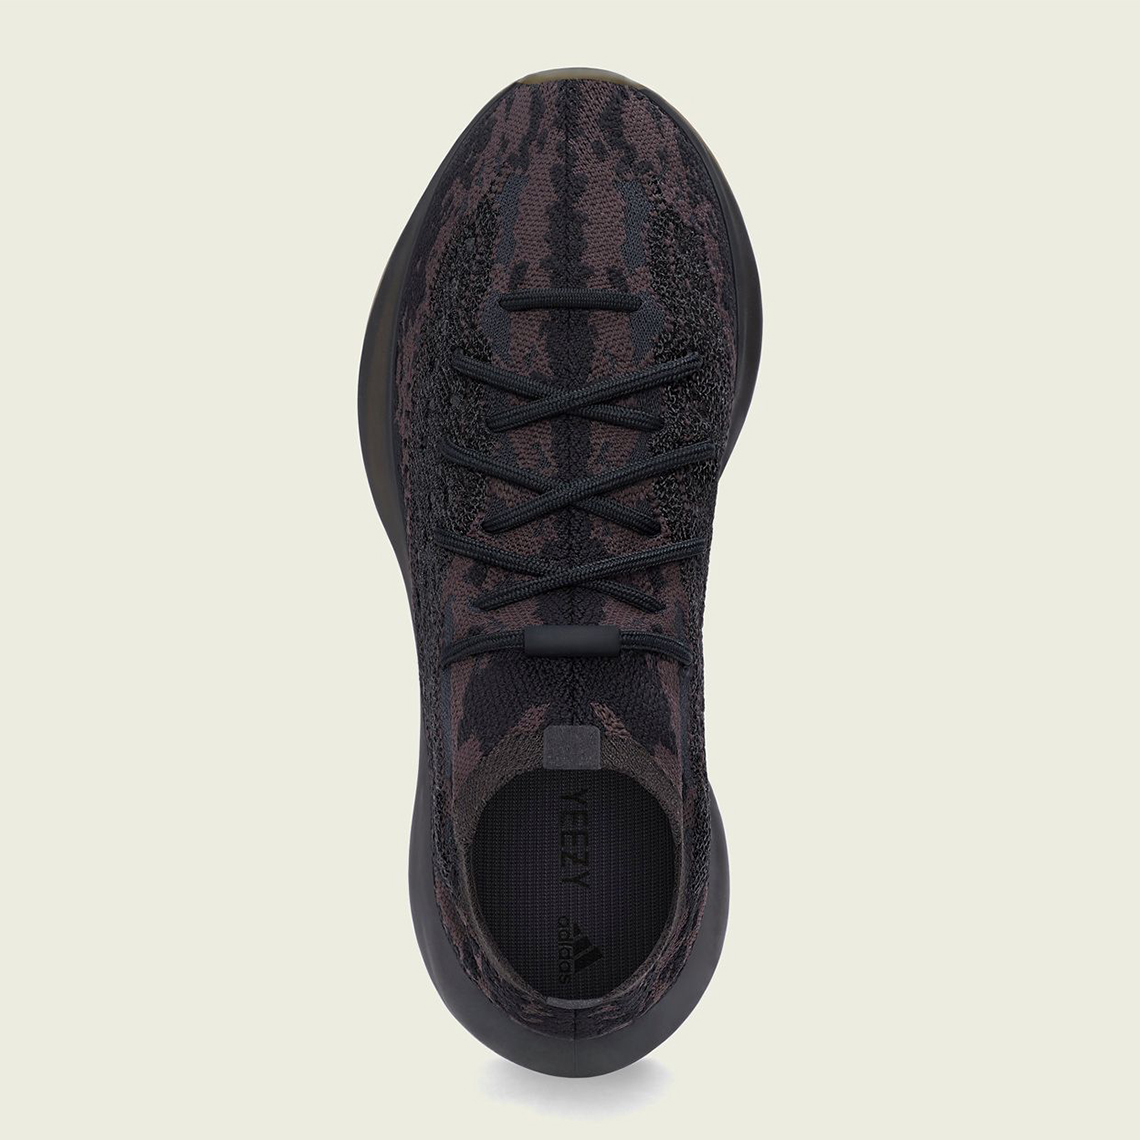 adidas-Yeezy-Boost-380-Onyx-Hover-View